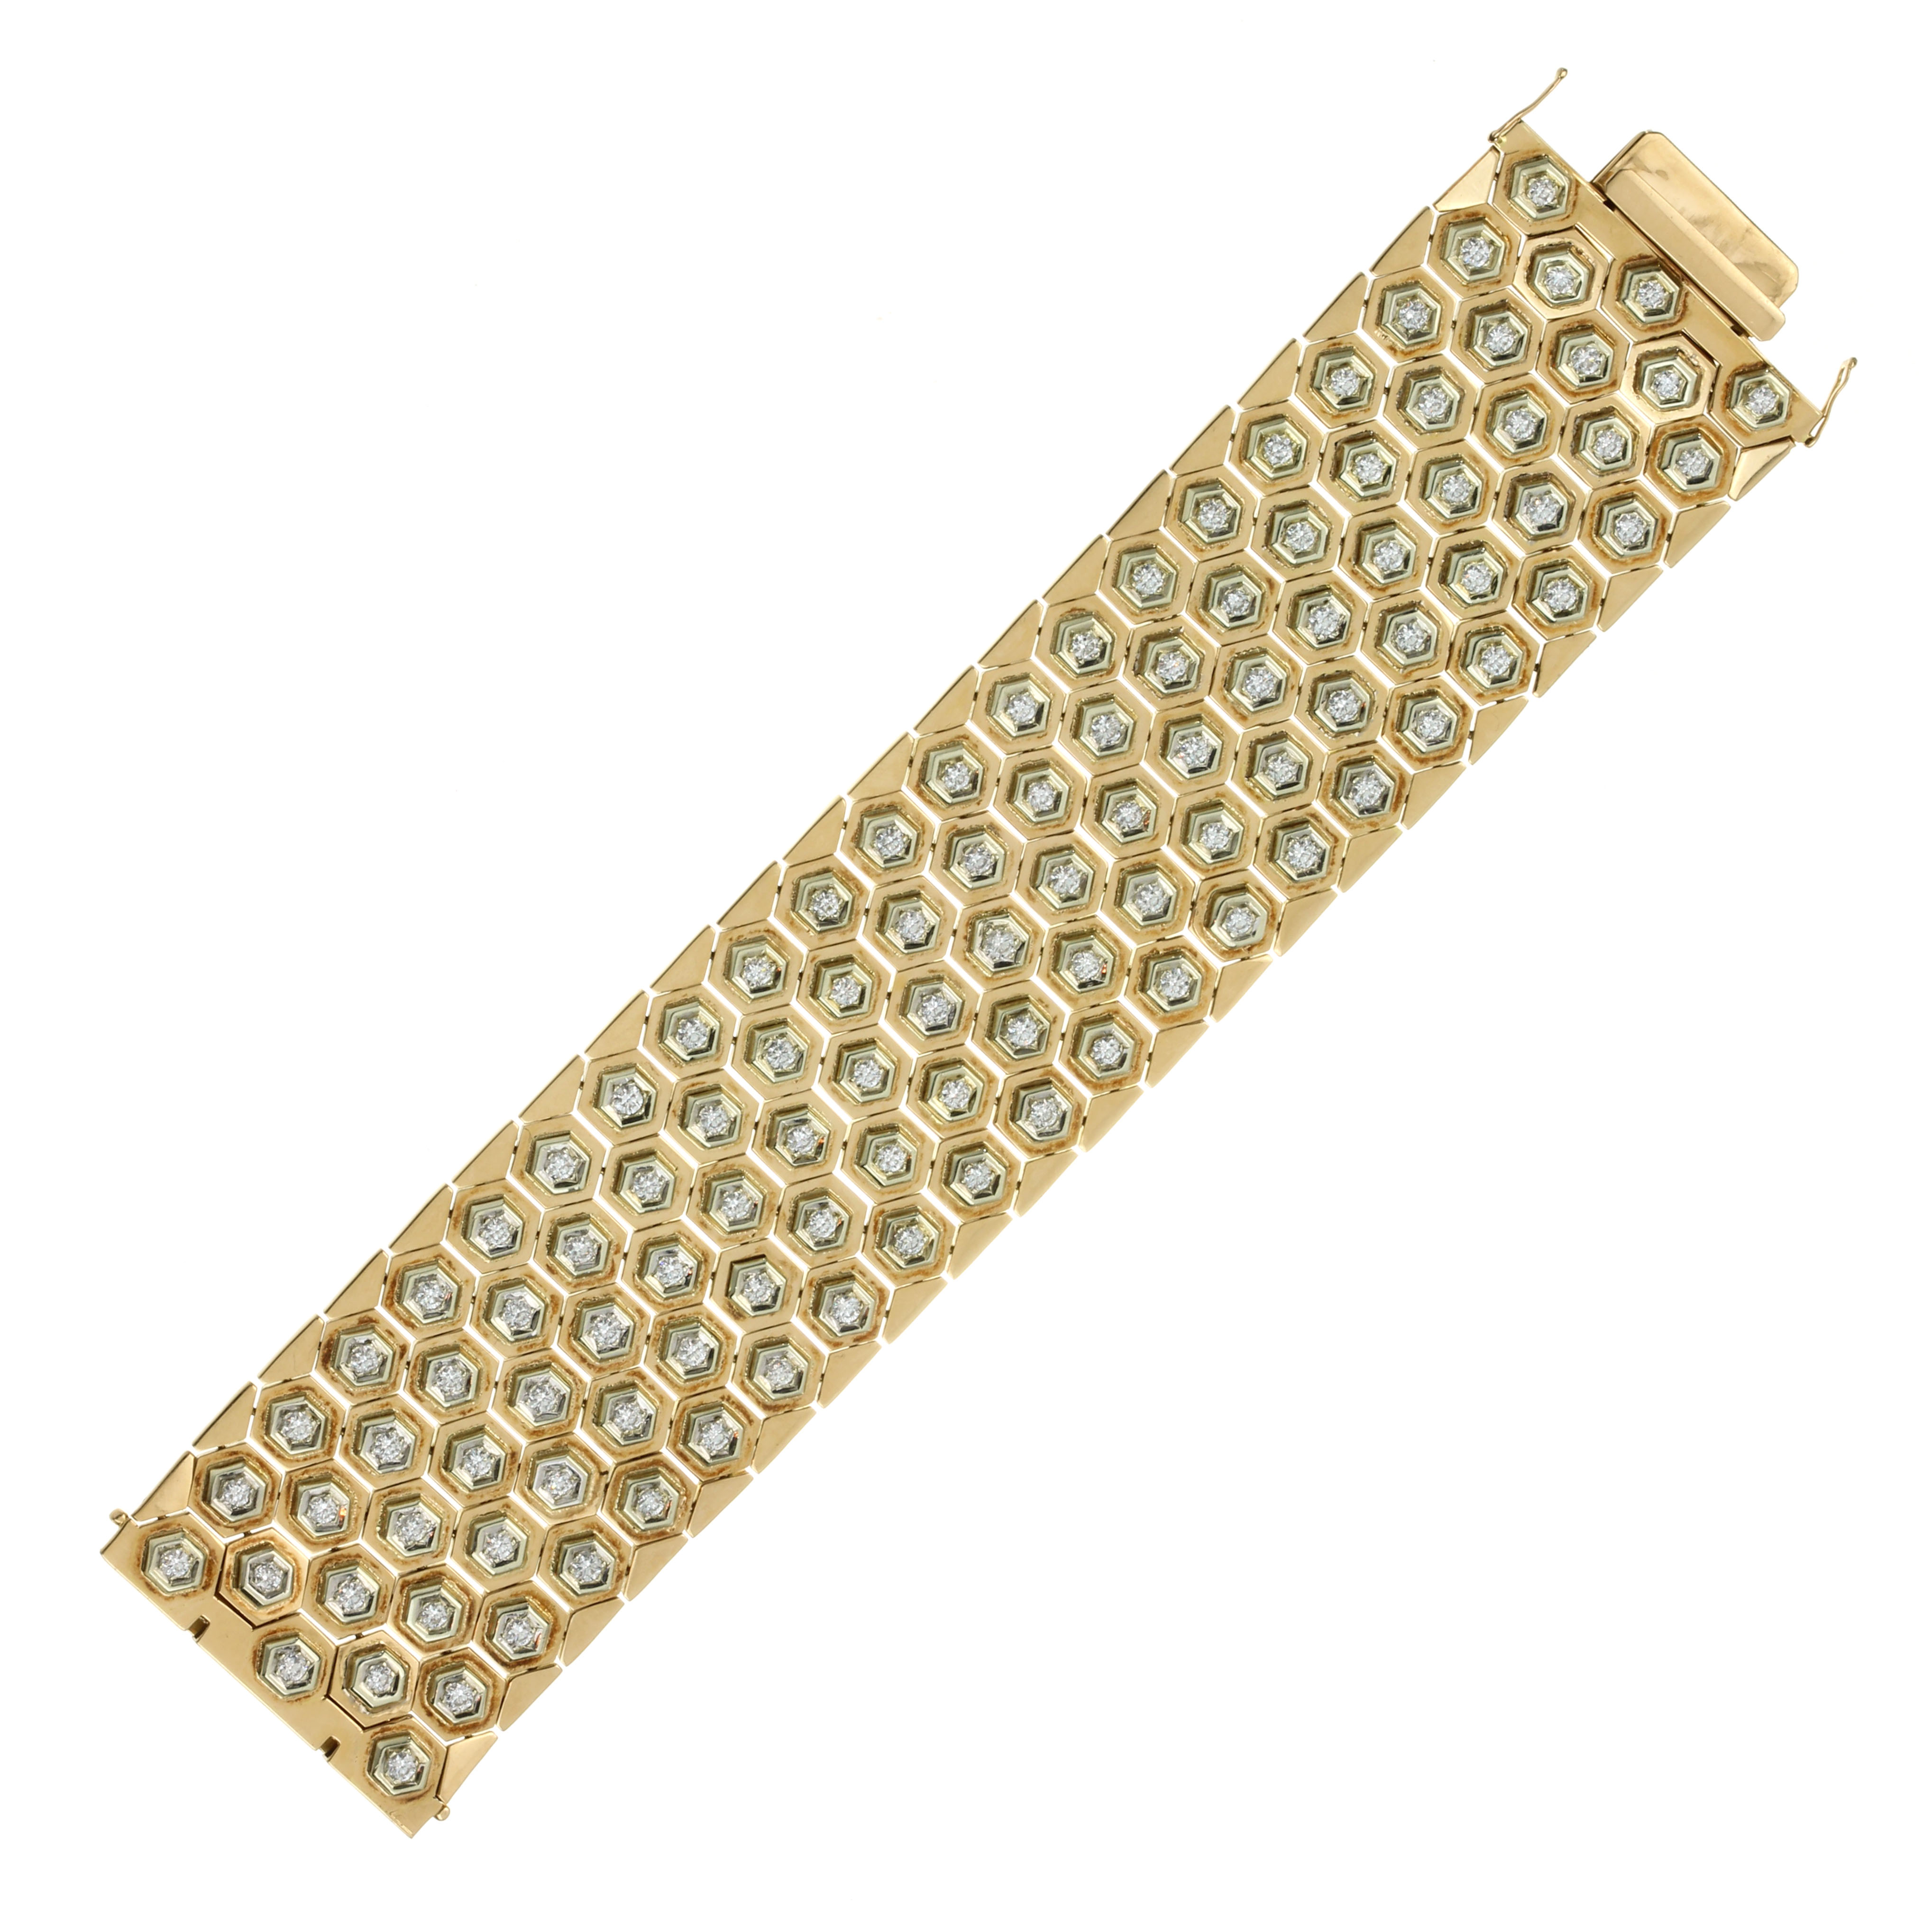 Los 60 - A DIAMOND FANCY LINK BRACELET in 18ct yellow gold, probably Italian, comprising five rows of